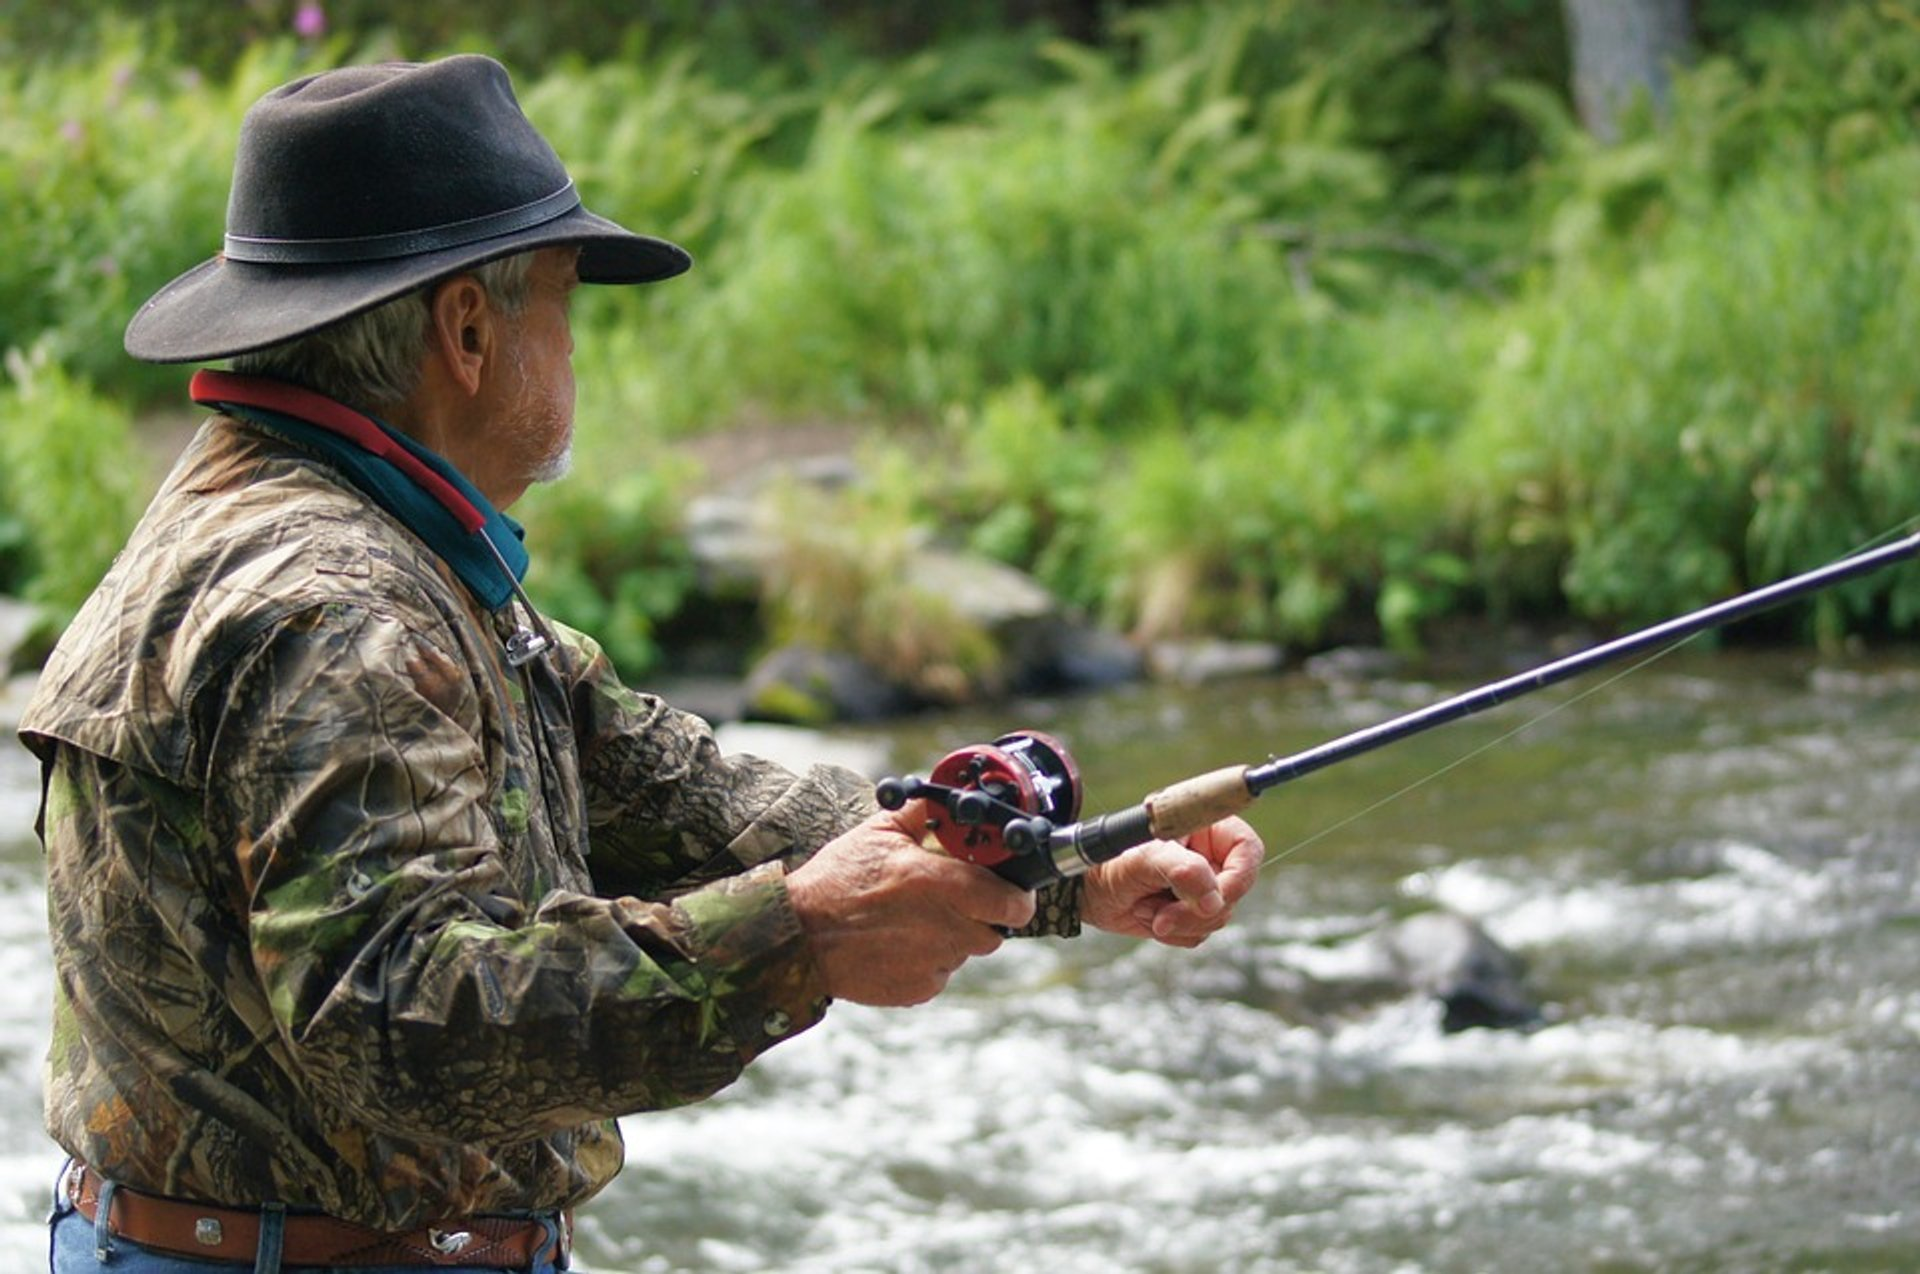 Rainbow Trout Fishing in Alaska 2020 - Best Time